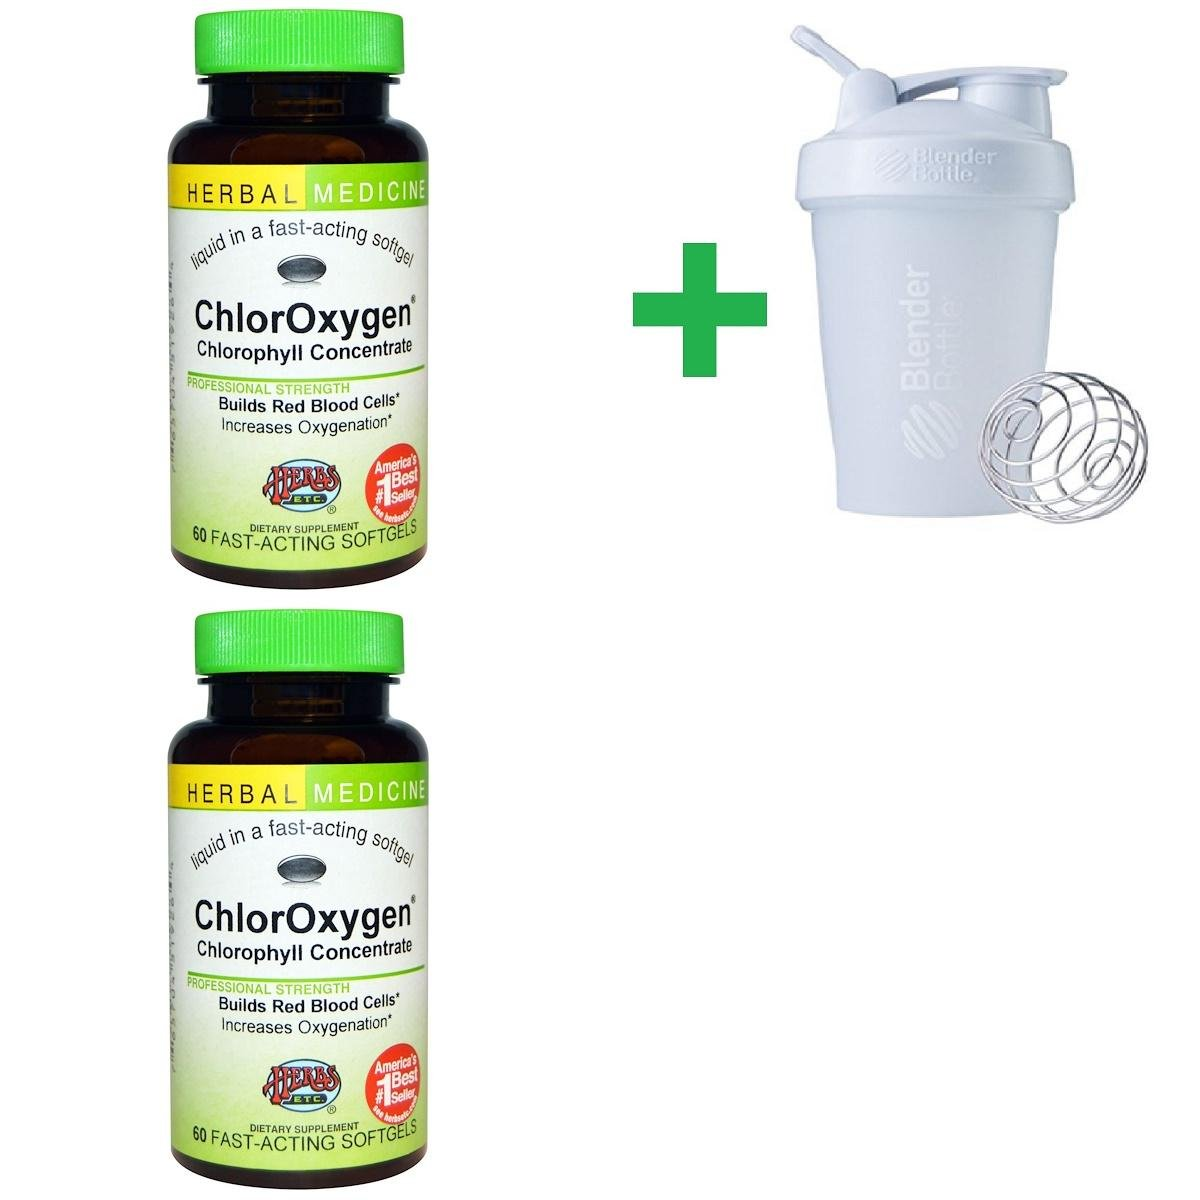 Herbs Etc, ChlorOxygen, Chlorophyll Concentrate, 60 Fast-Acting Softgels(2 PCS)+ Assorted Sundesa, BlenderBottle, Classic with Loop, 20 oz